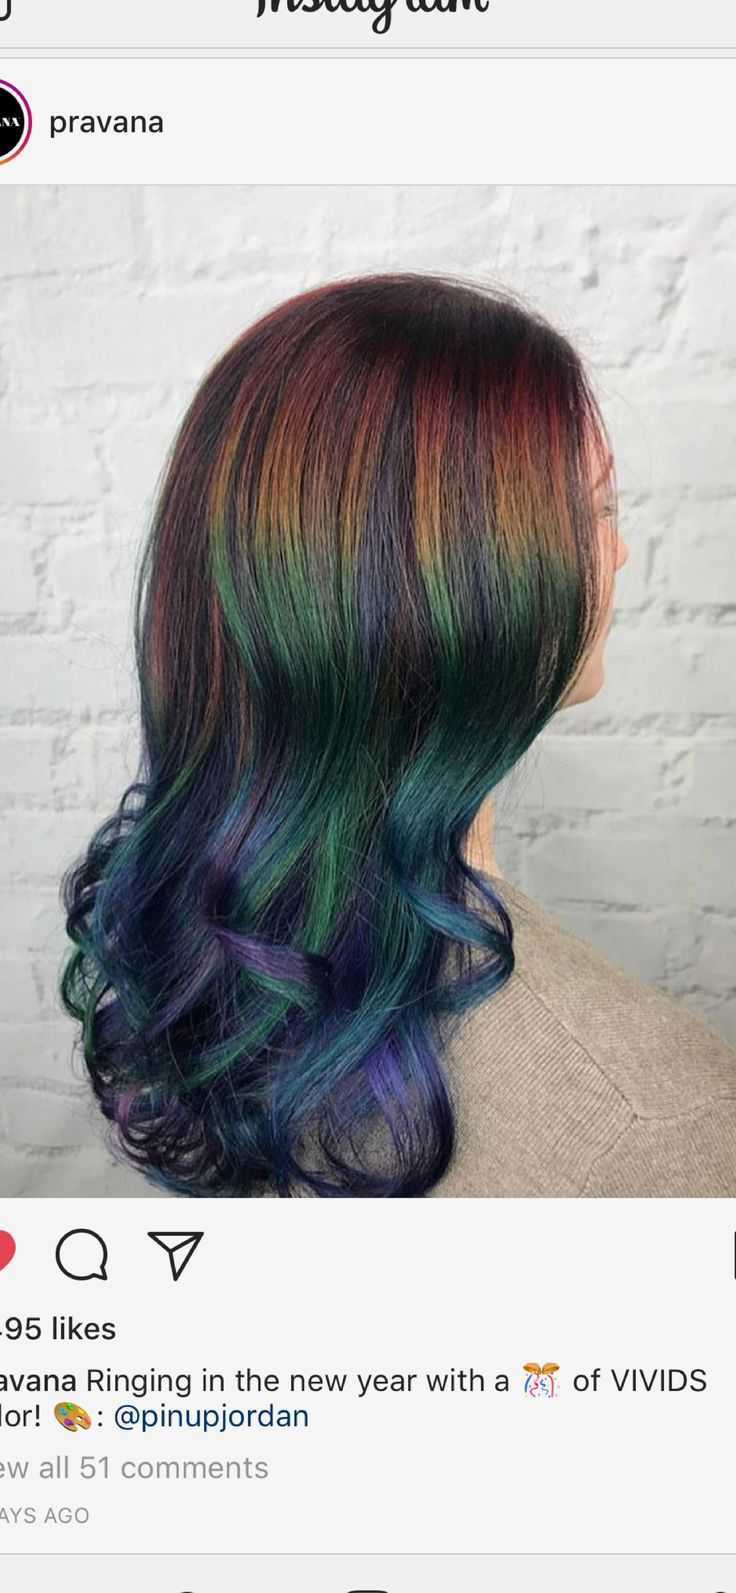 Just like this, but warm brown as the base instead of the cool black-brown, and just stop at the green part